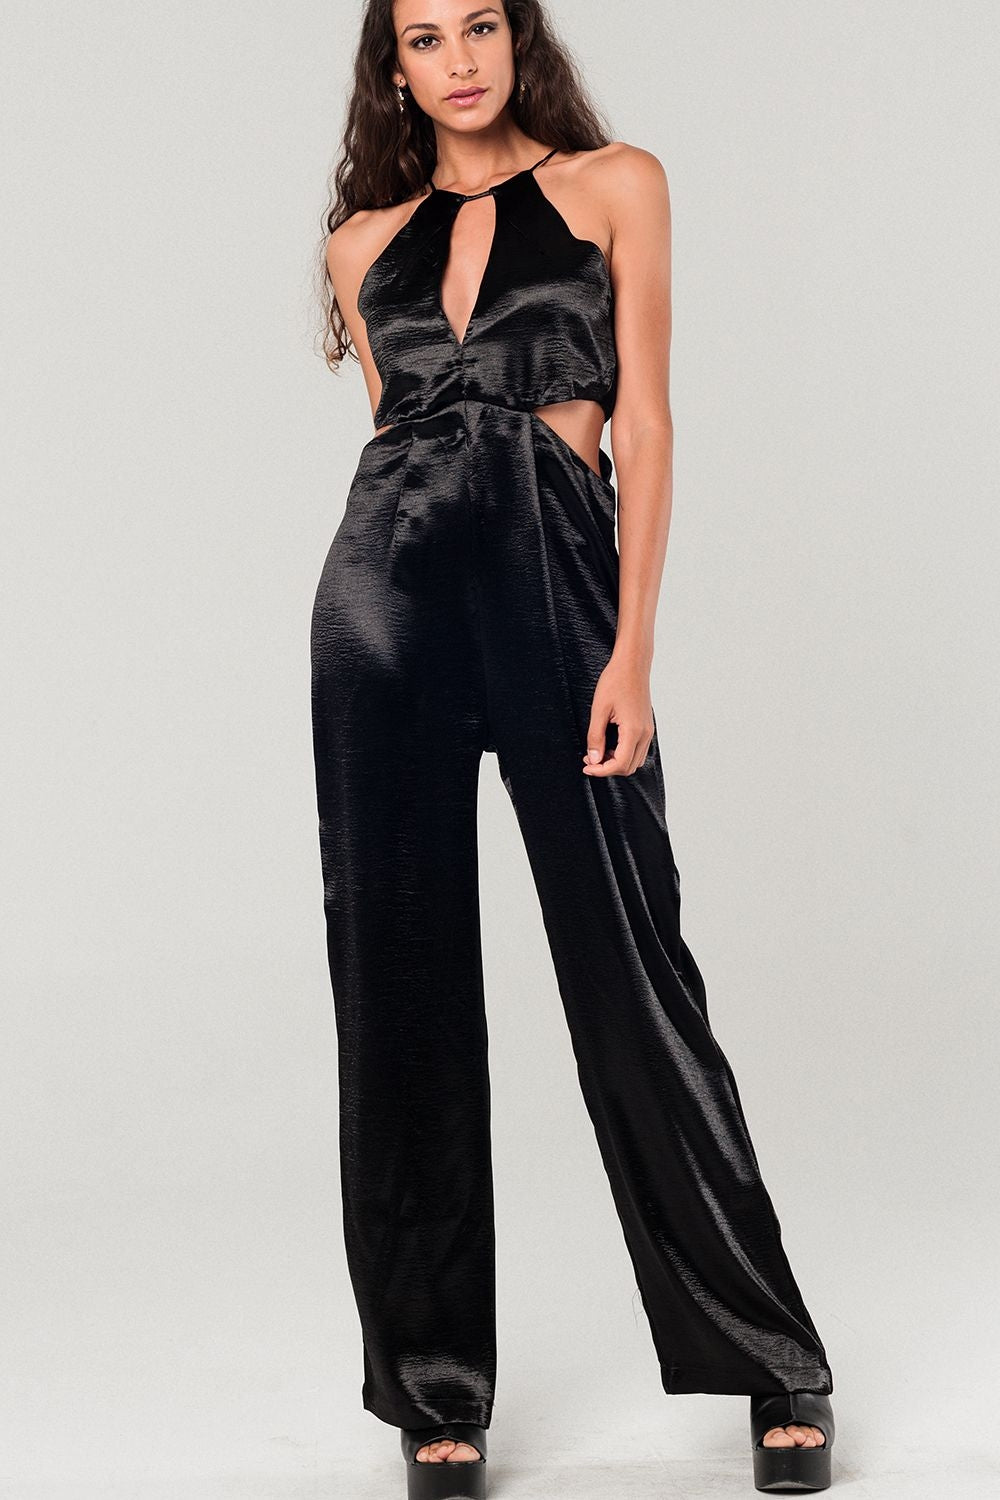 Metallic Black Jumpsuit With Cutout Details